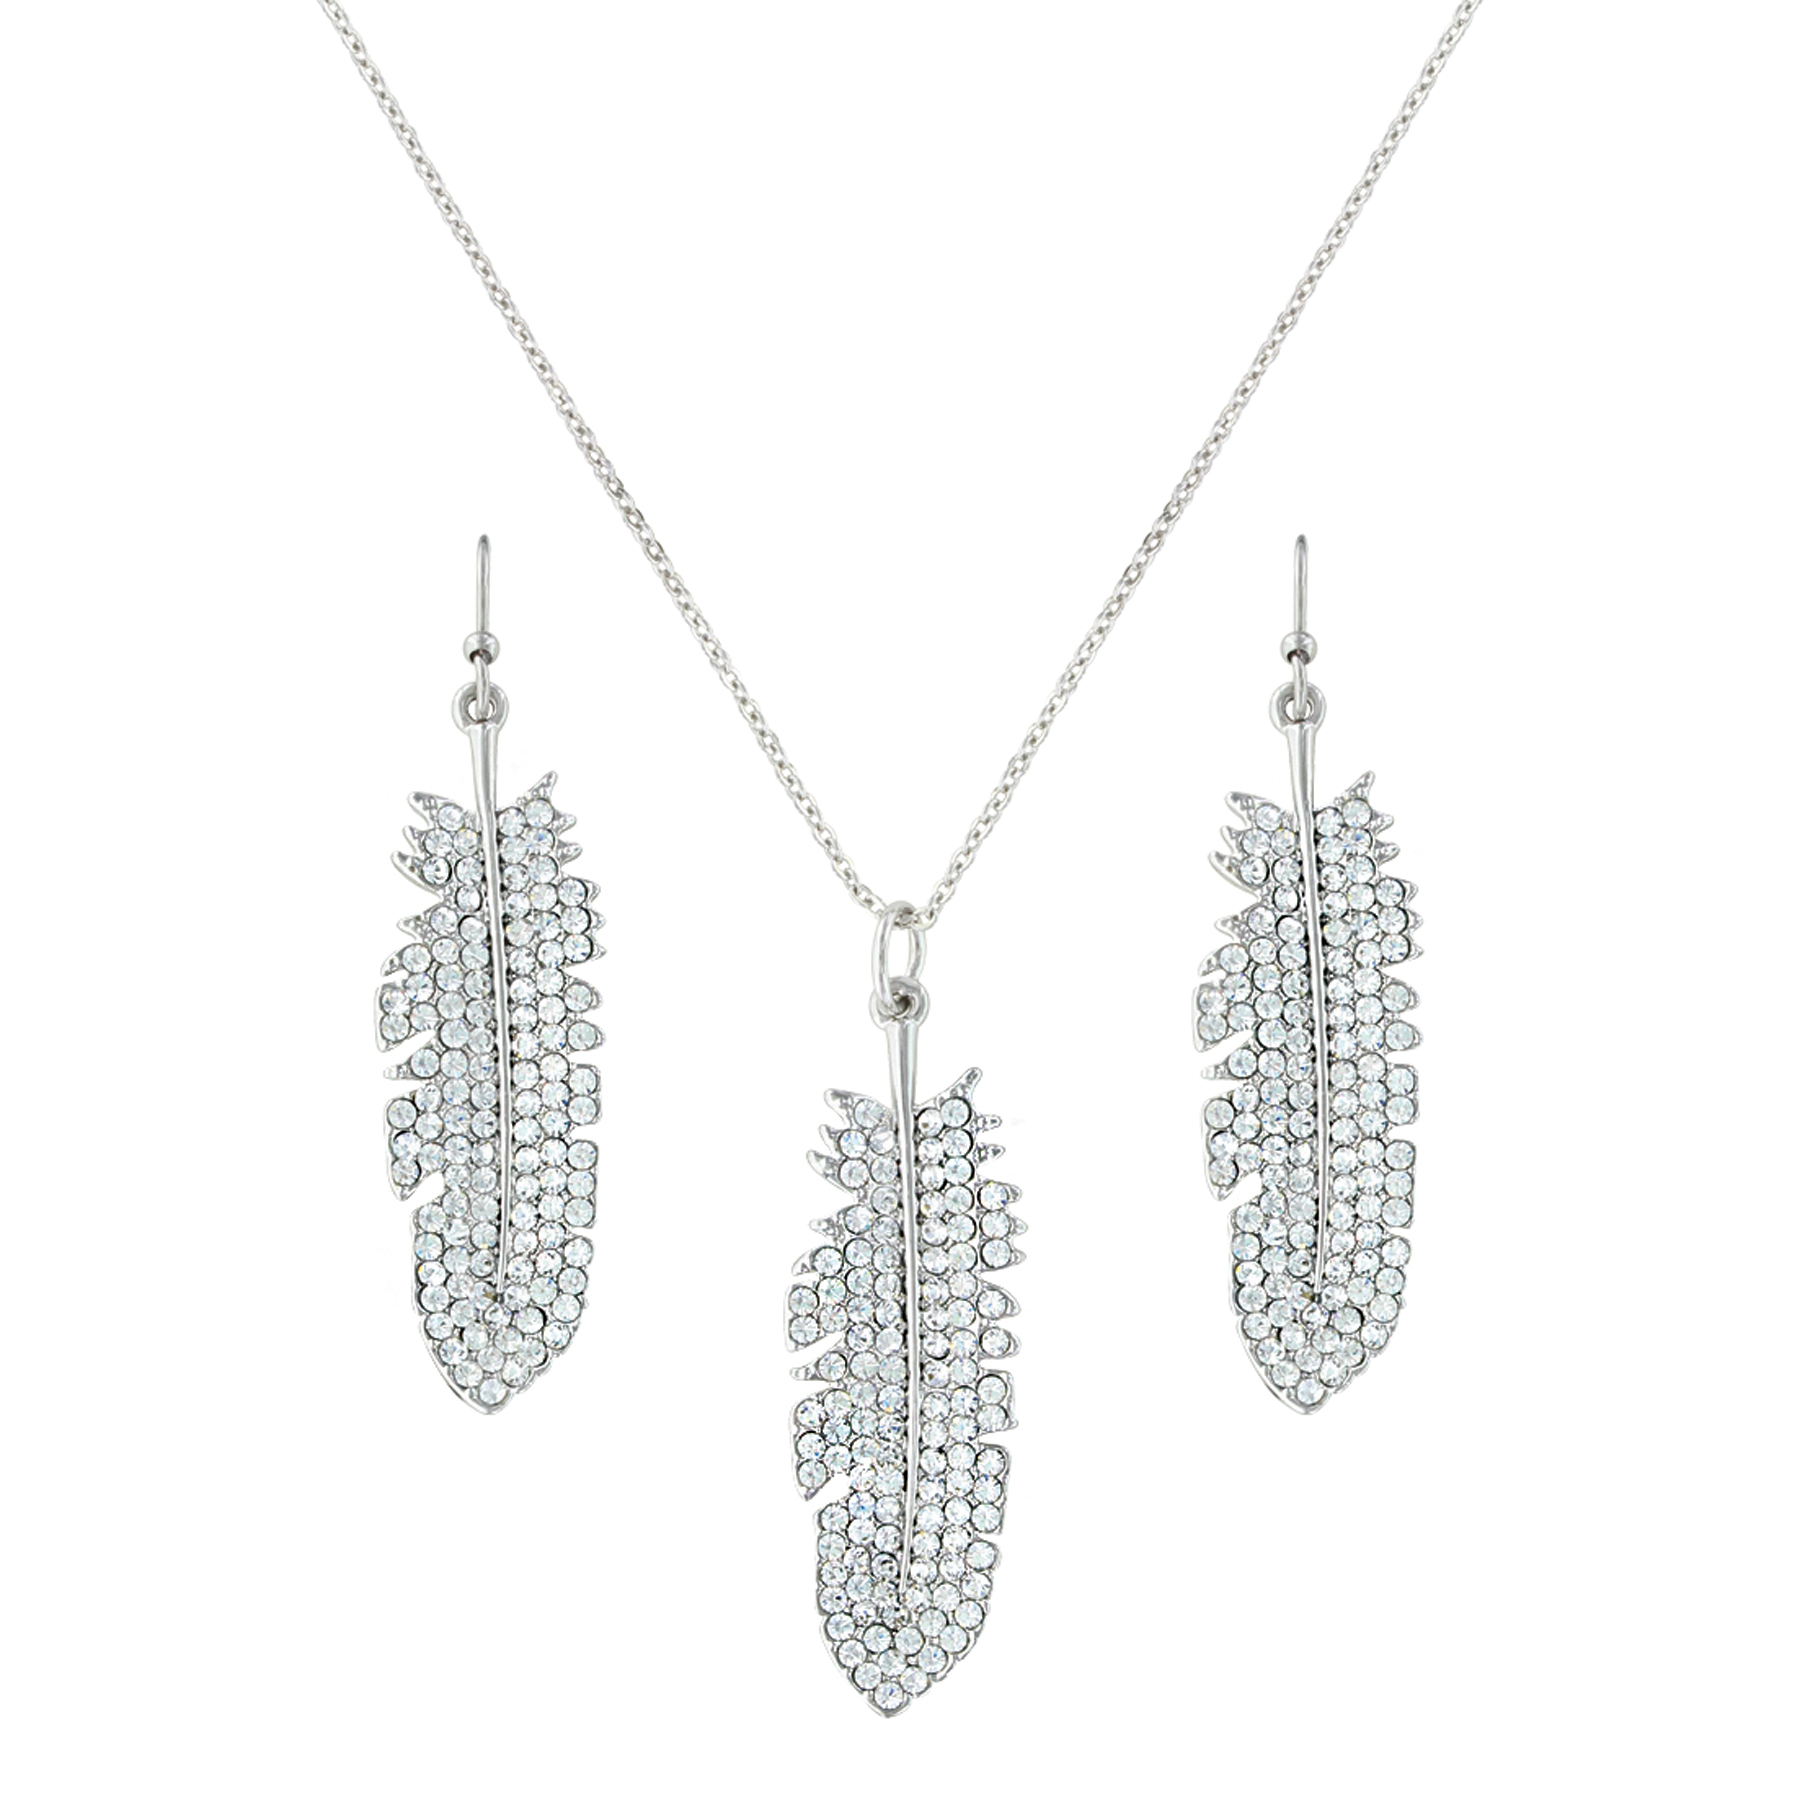 Shimmering Feather Jewelry Set In Recent Shimmering Feather Pendant Necklaces (View 16 of 25)